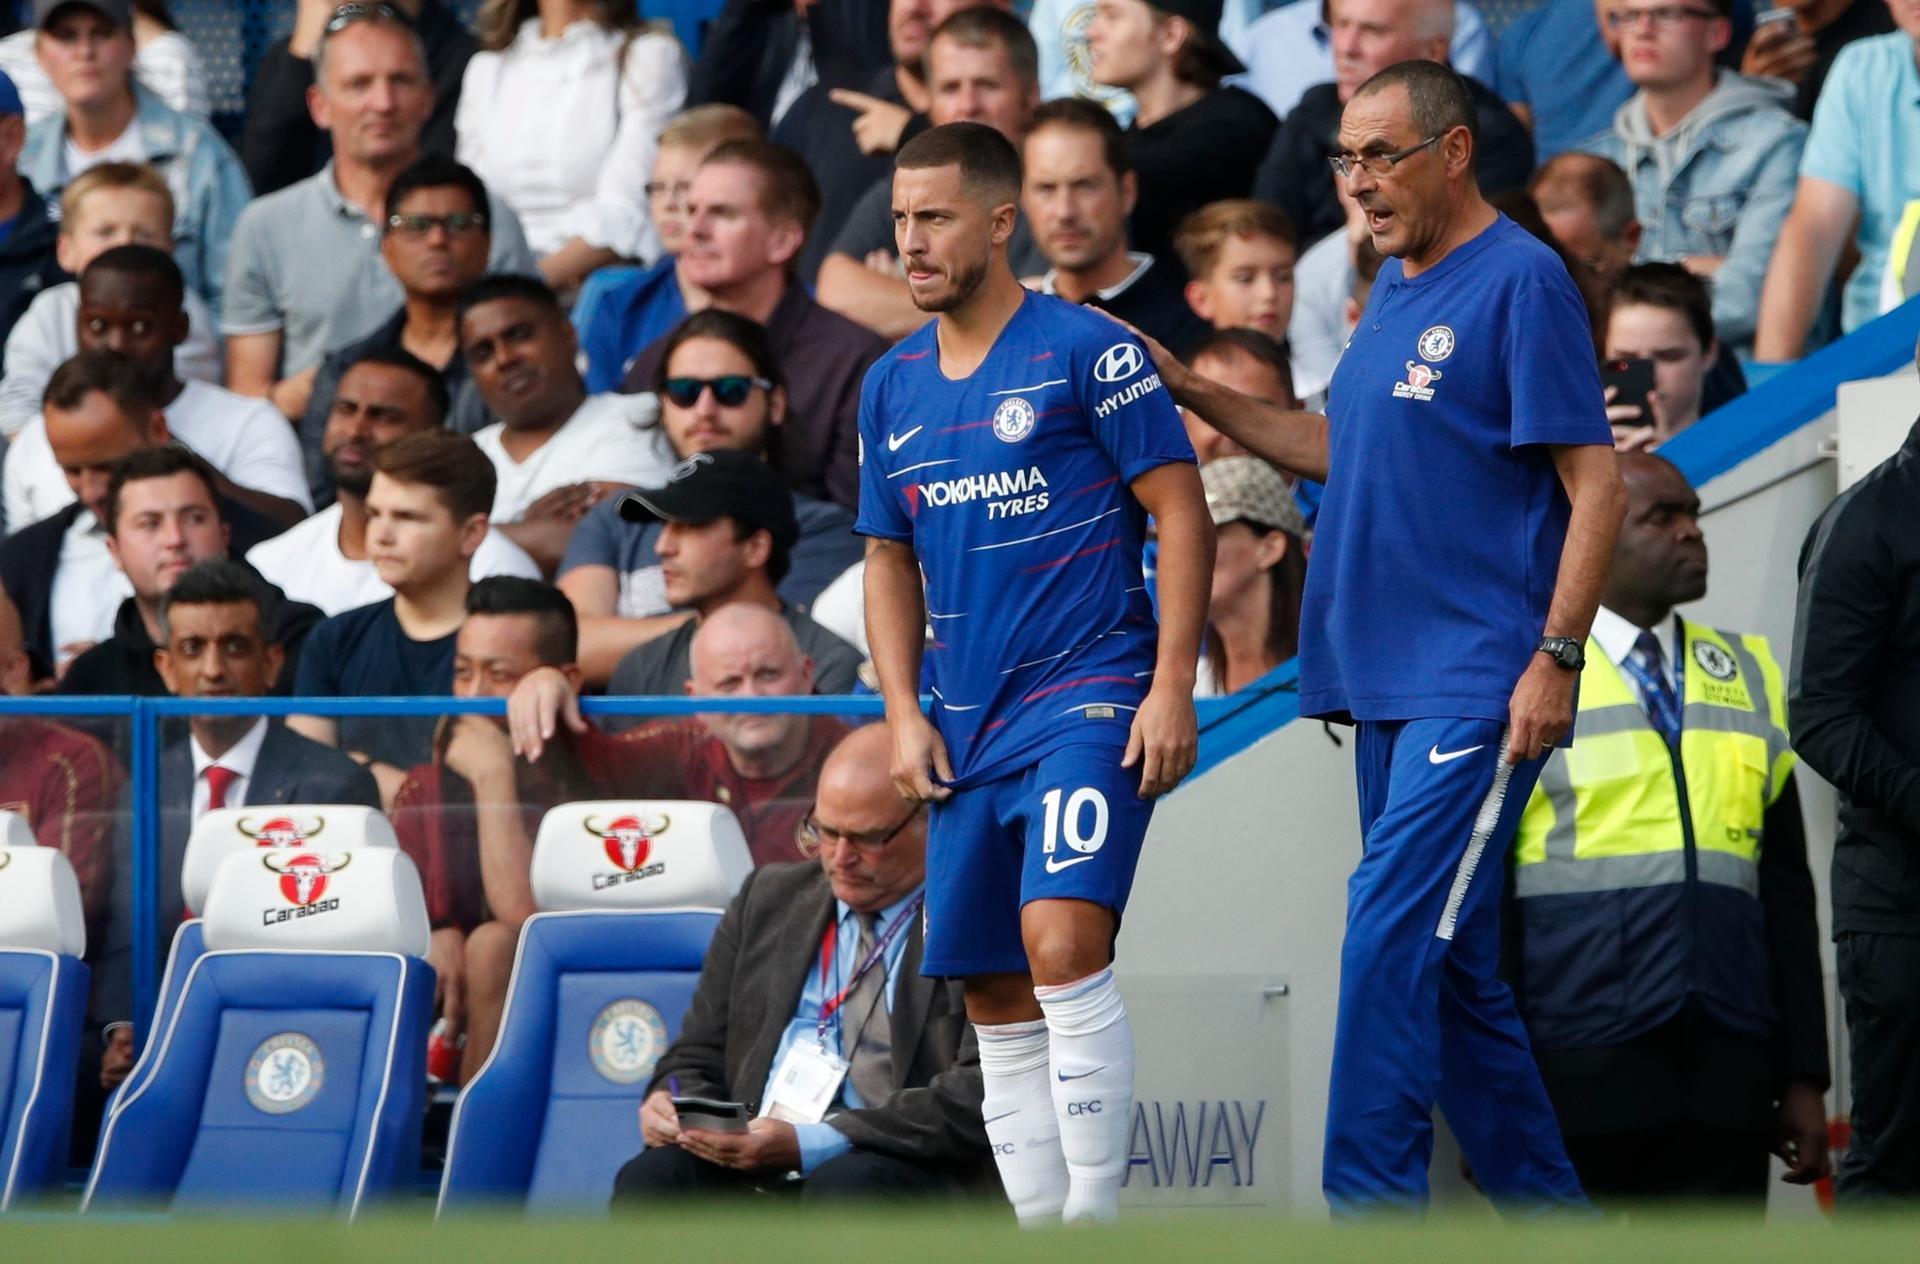 Chelsea fans set to unveil new banner for Hazard in EPL